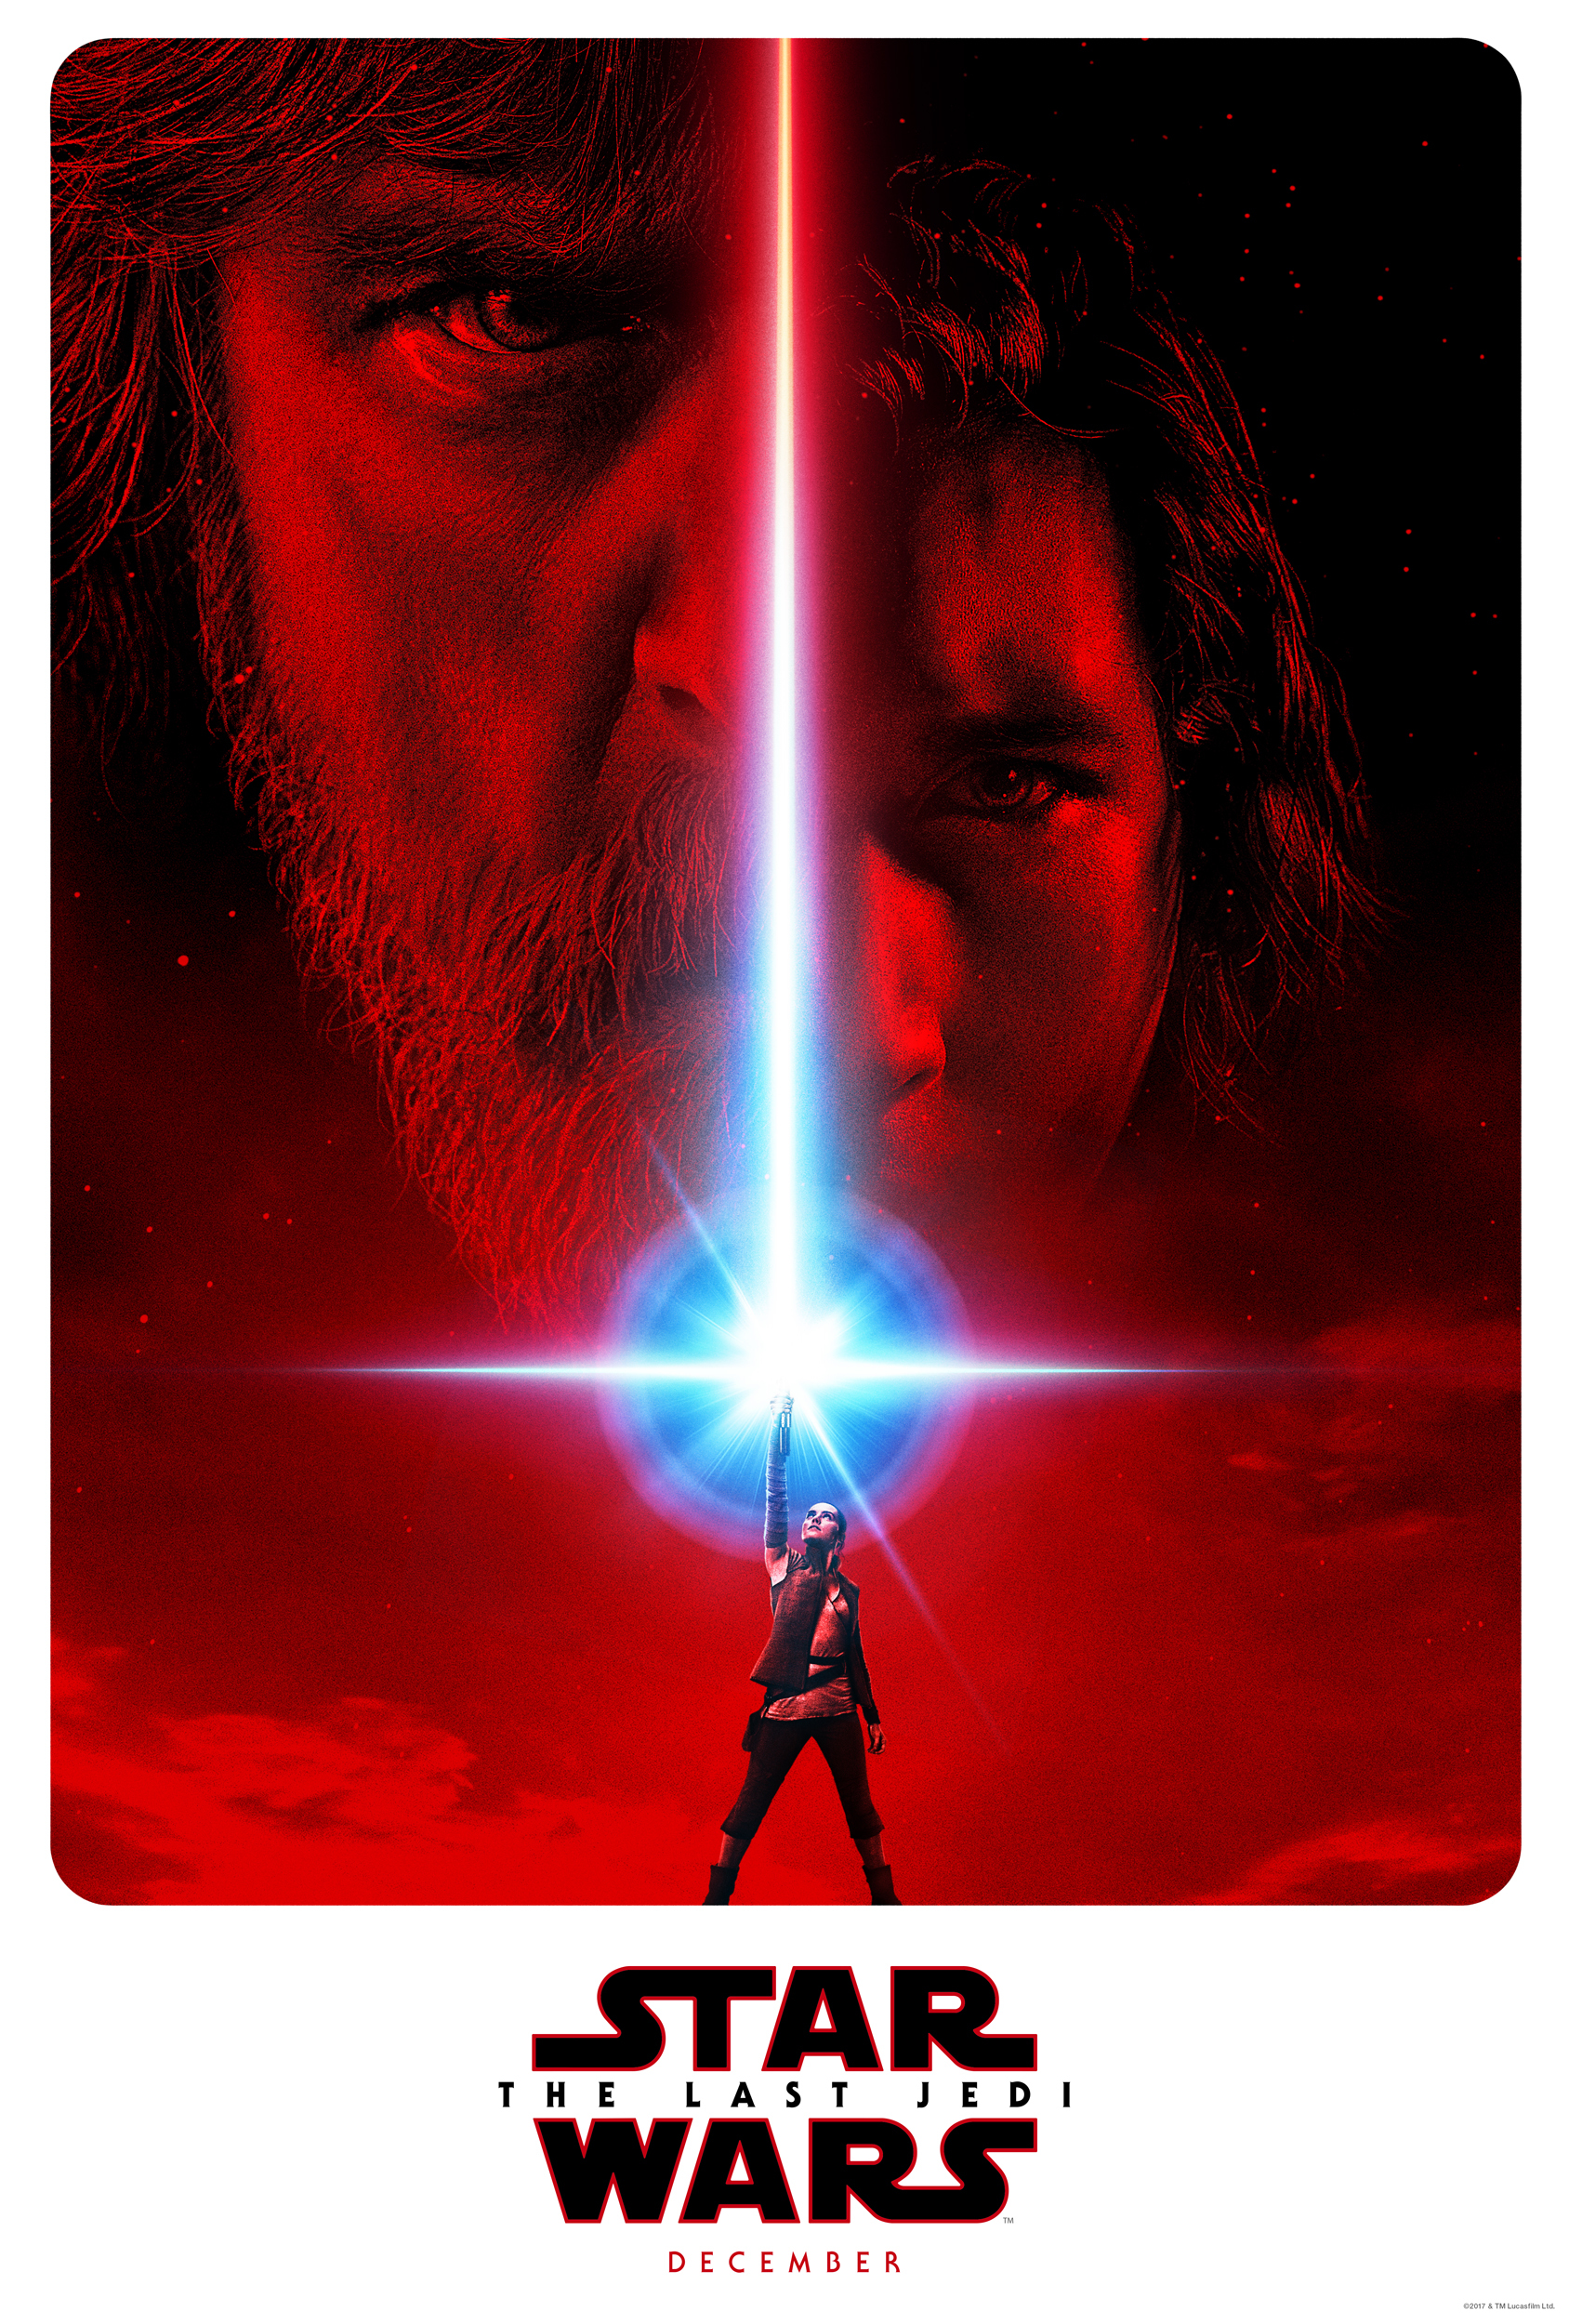 「star wars the last jedi poster」の画像検索結果